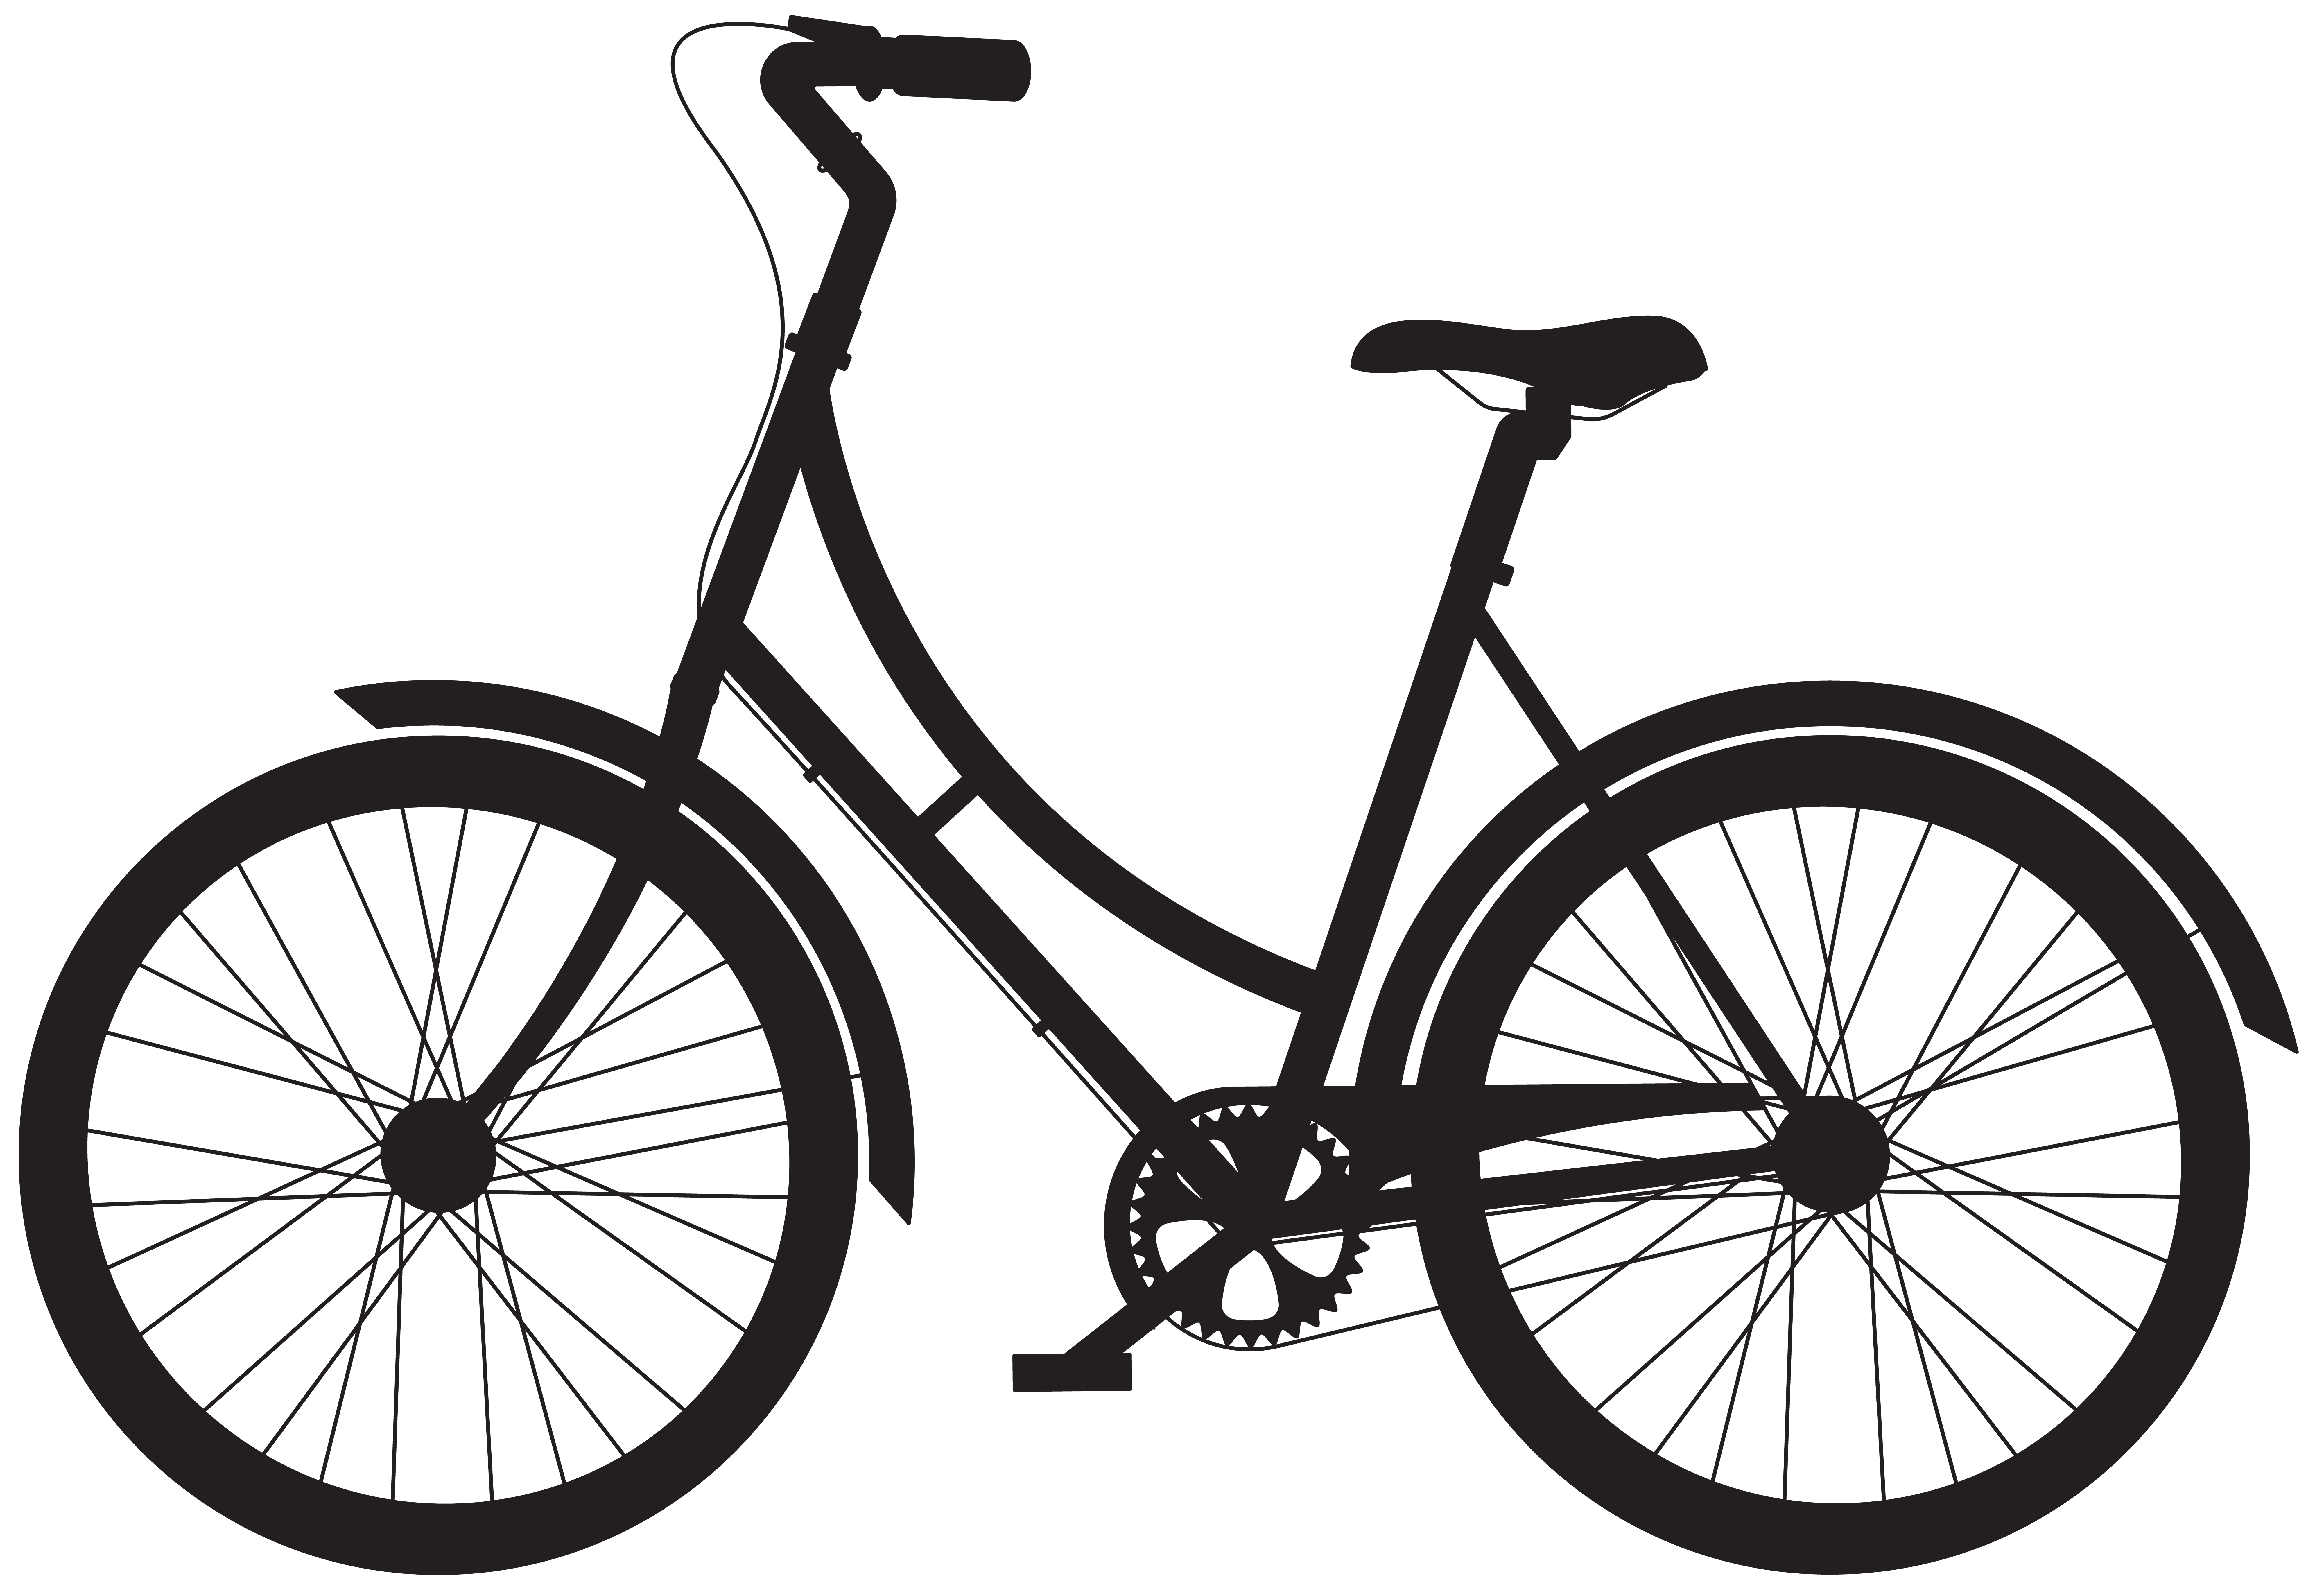 Bike silhouette clipart jpg free download Bicycle Silhouette PNG Clip Art | Gallery Yopriceville - High ... jpg free download